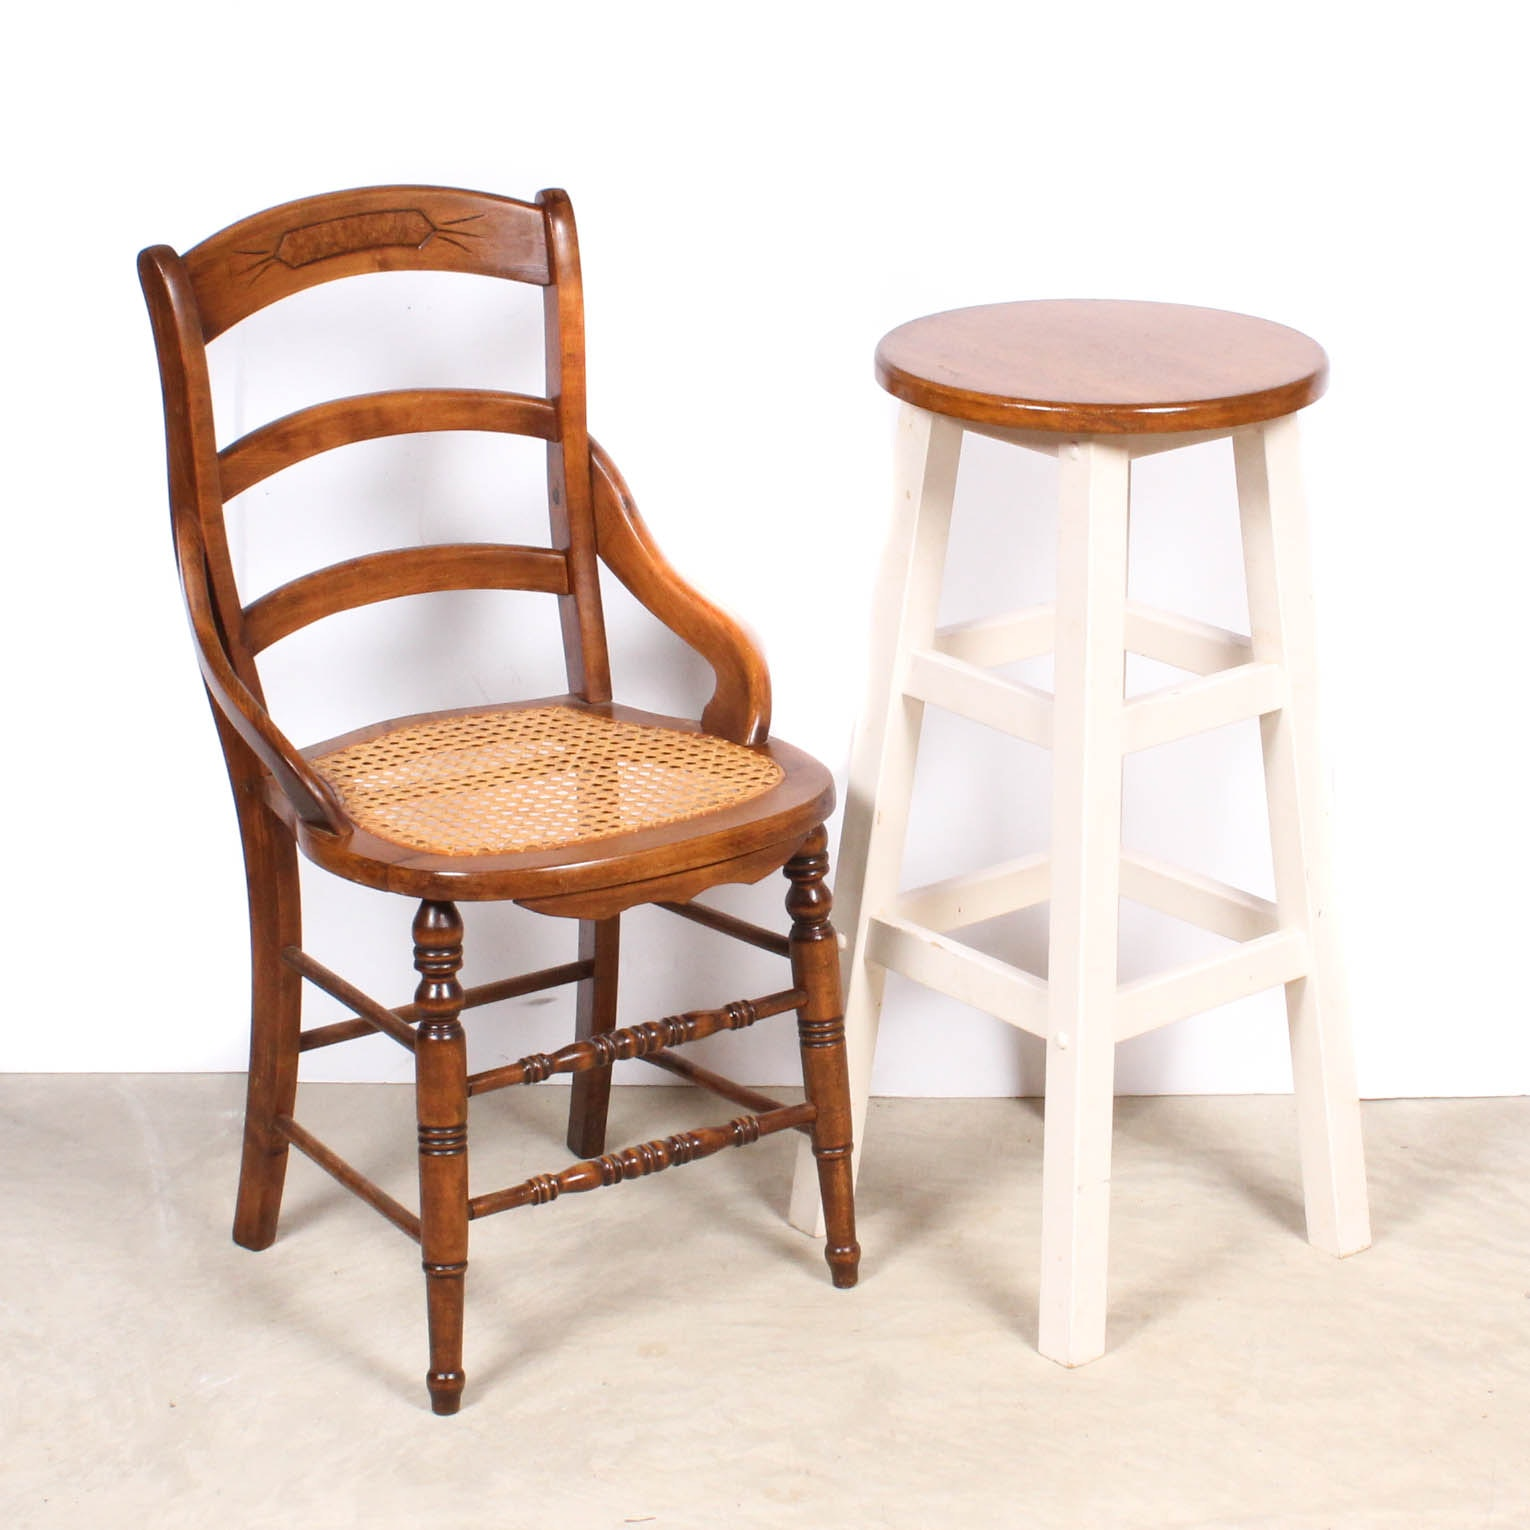 Caned Chair and Bar Stool